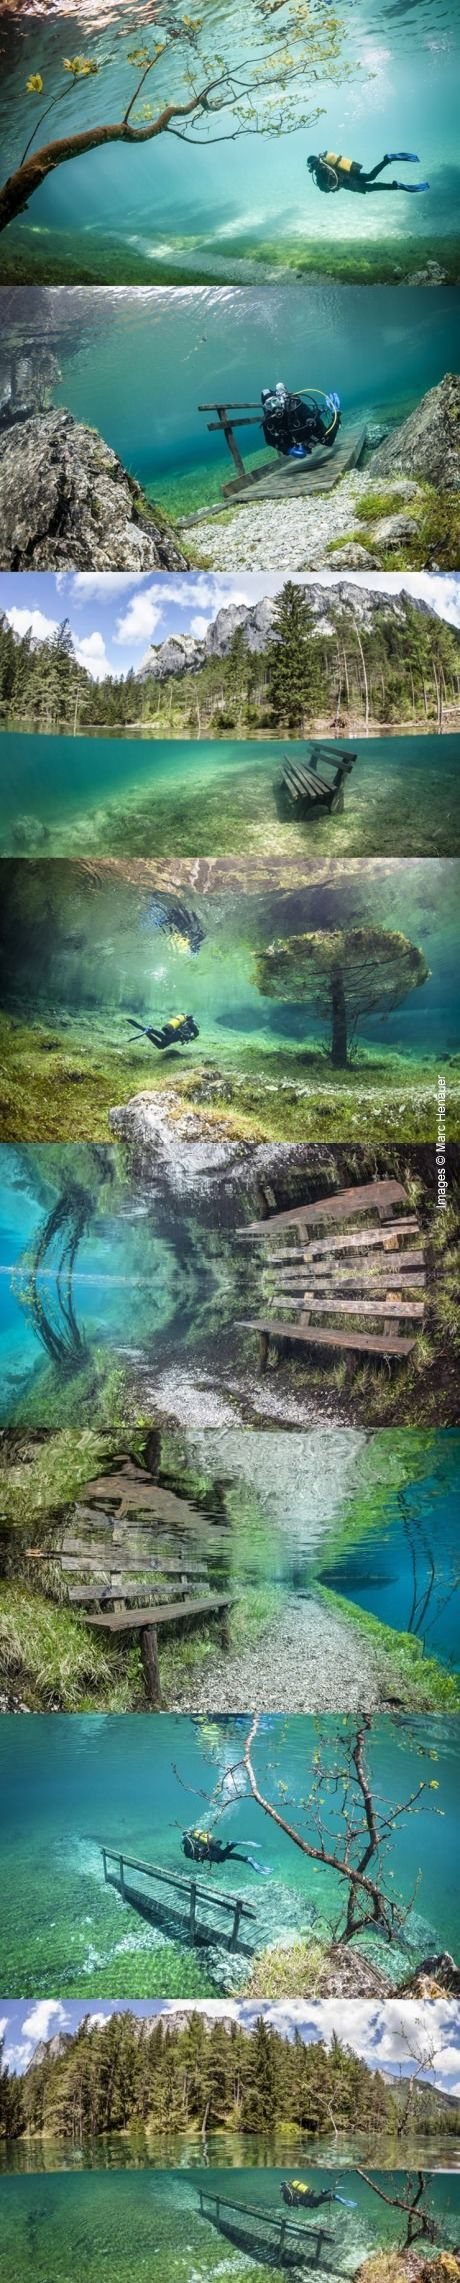 Under water park - Grüner See (Green Lake), located near the town of Tragoss in the Hochschwab mountains of Austria